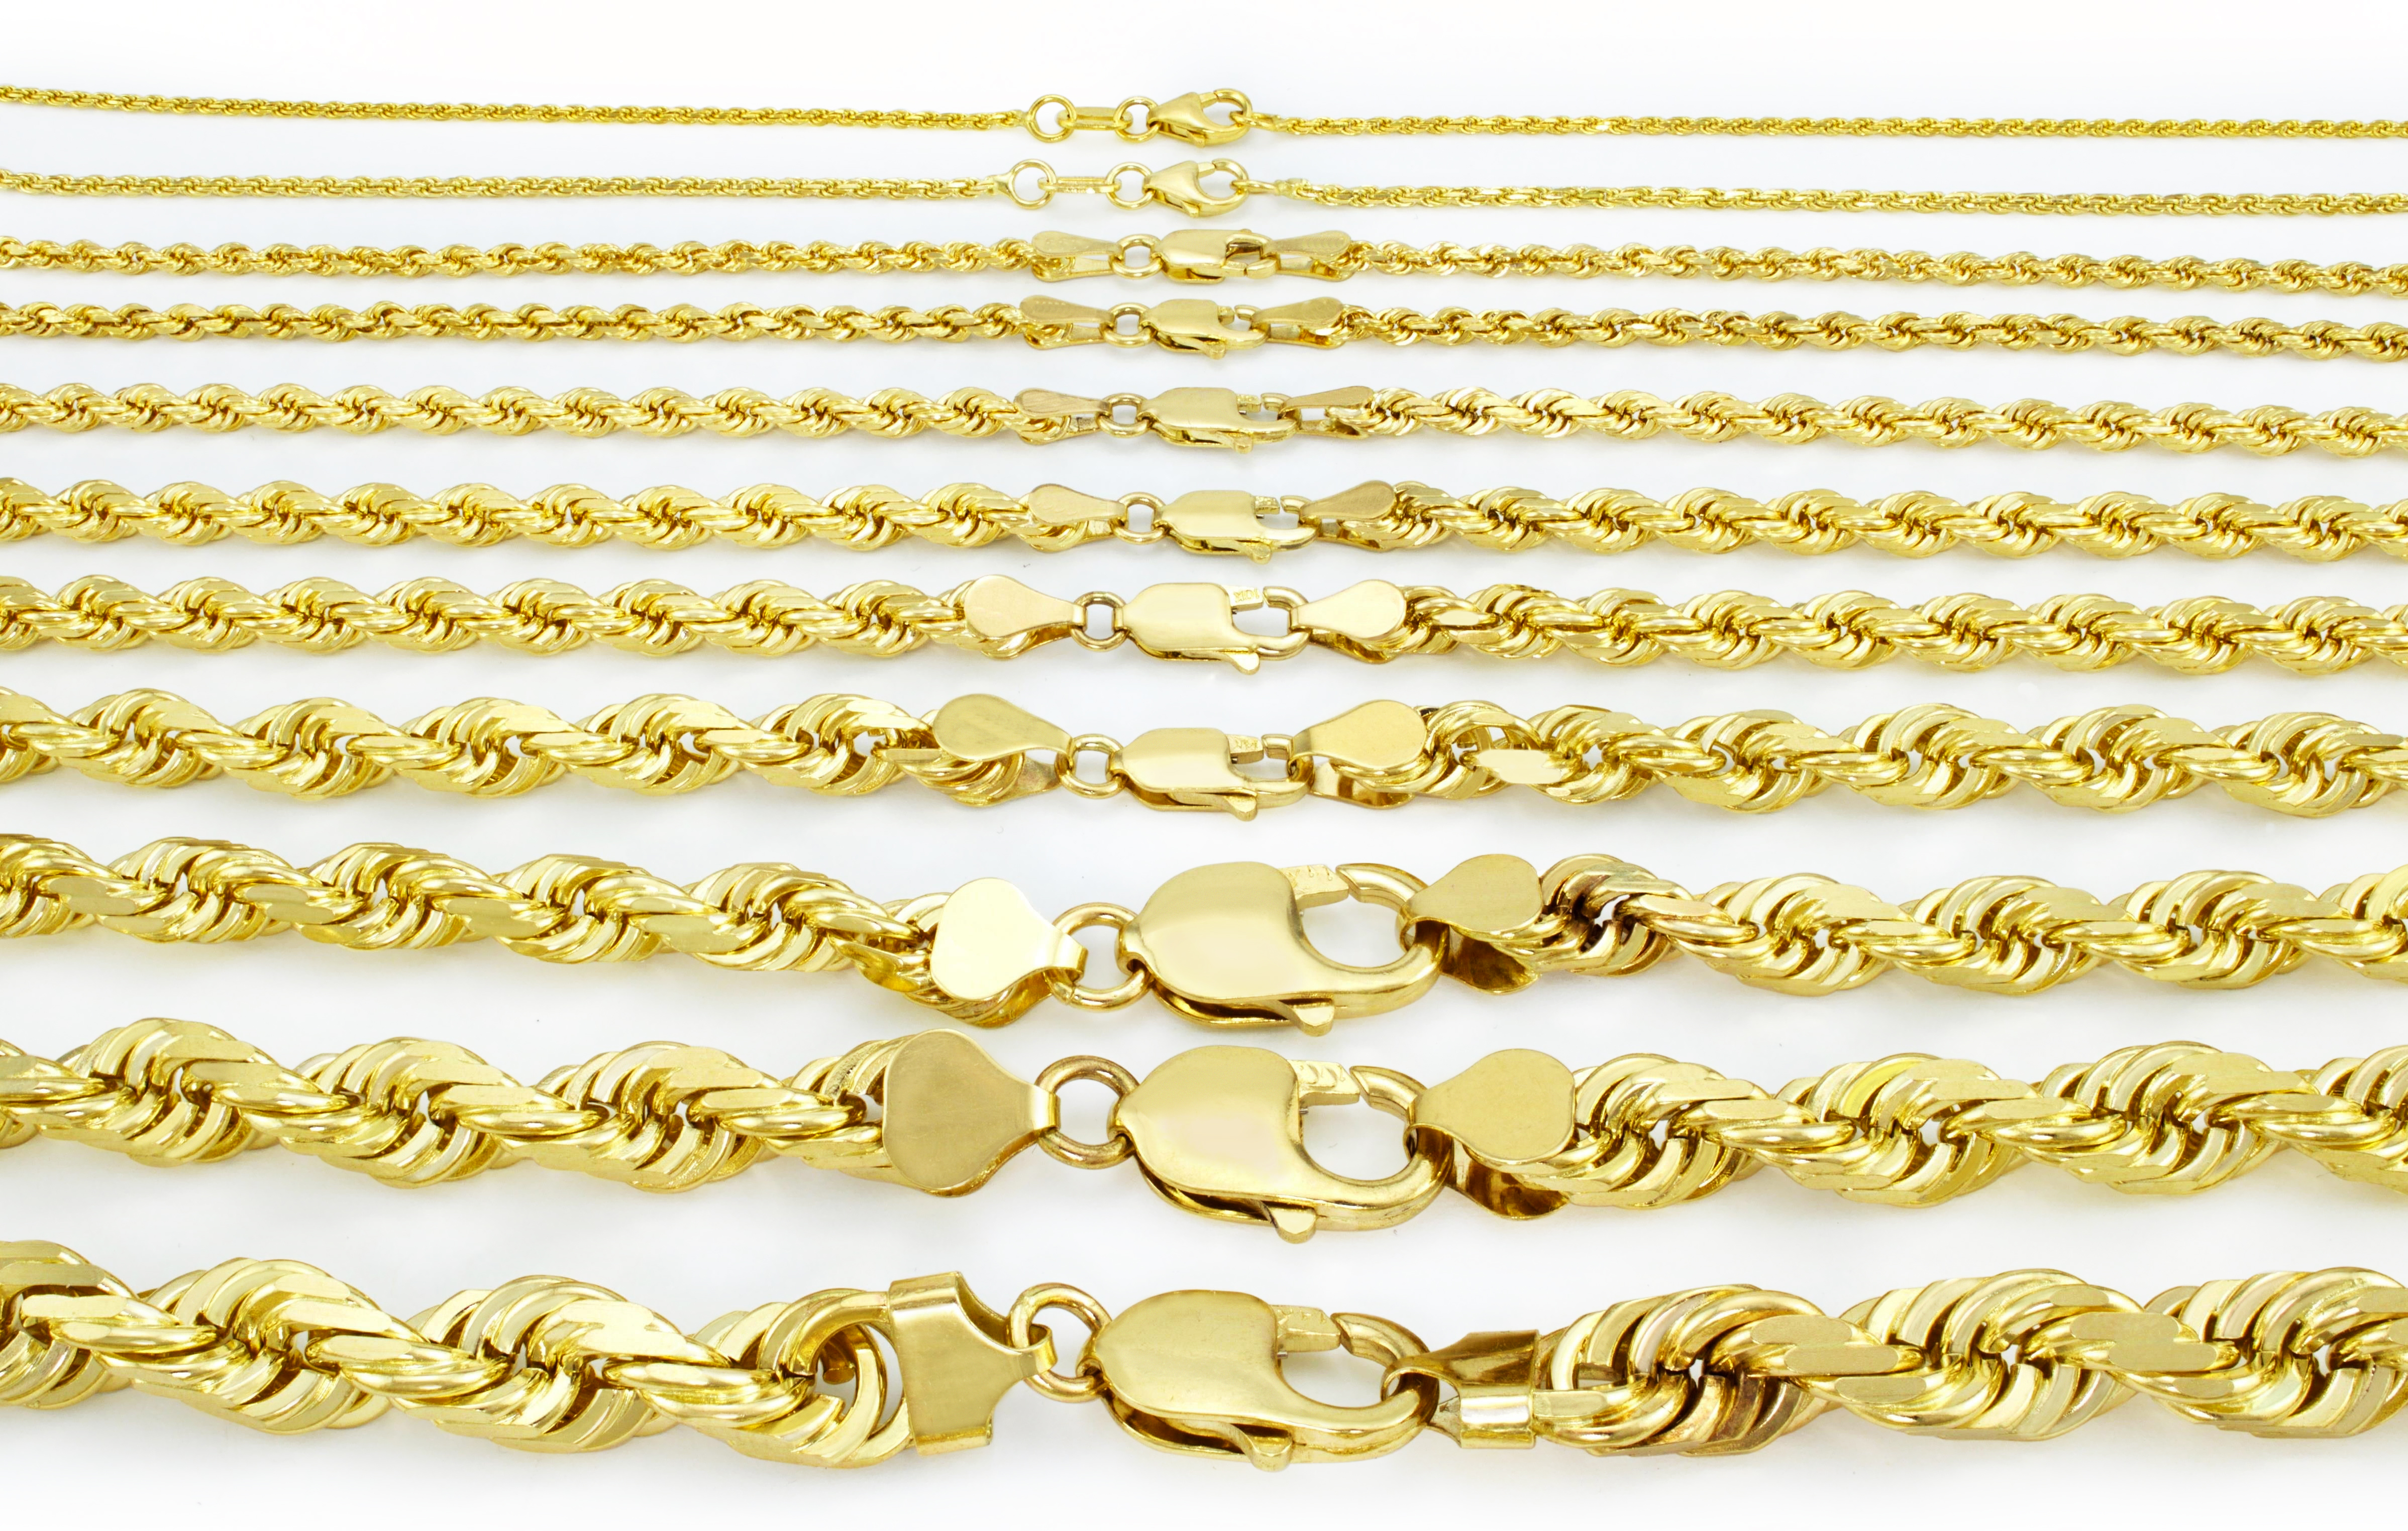 10K-Yellow-Gold-1mm-10mm-Diamond-Cut-Solid-Rope-Chain-Pendant-Necklace-16-034-32-034 thumbnail 2